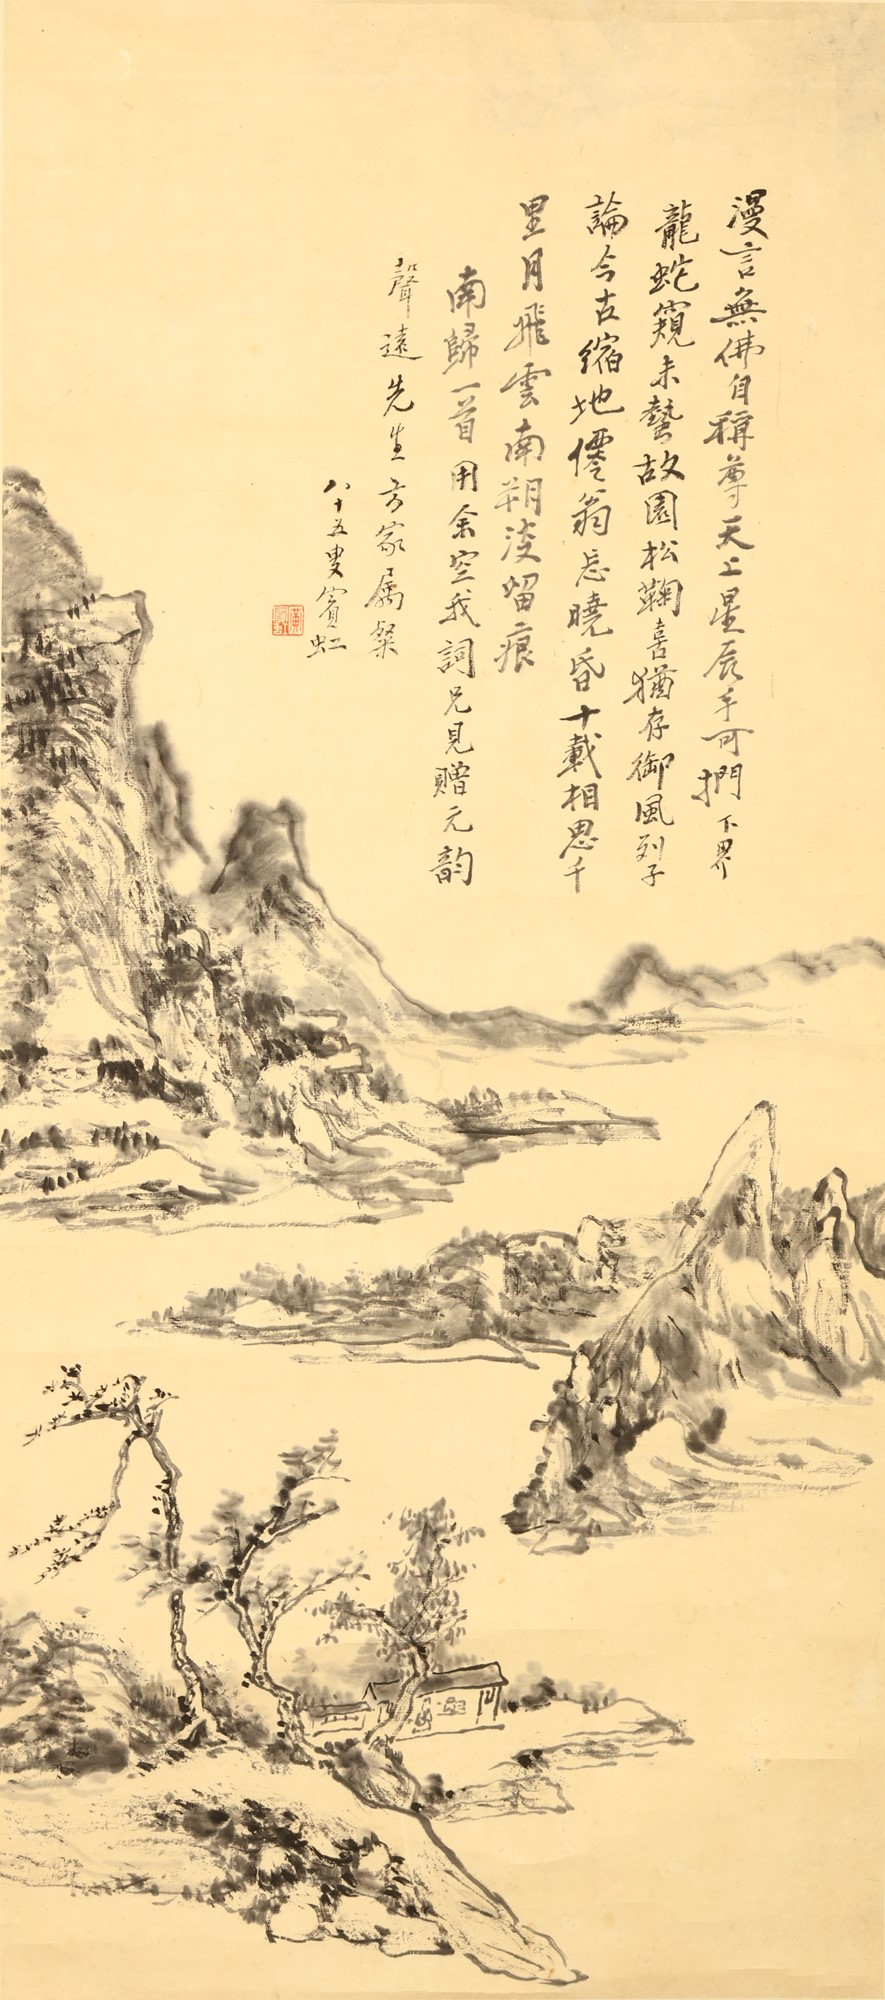 Huang Binhong (attrib., 1864 - 1955) ink and colour on paper, two hanging scrolls